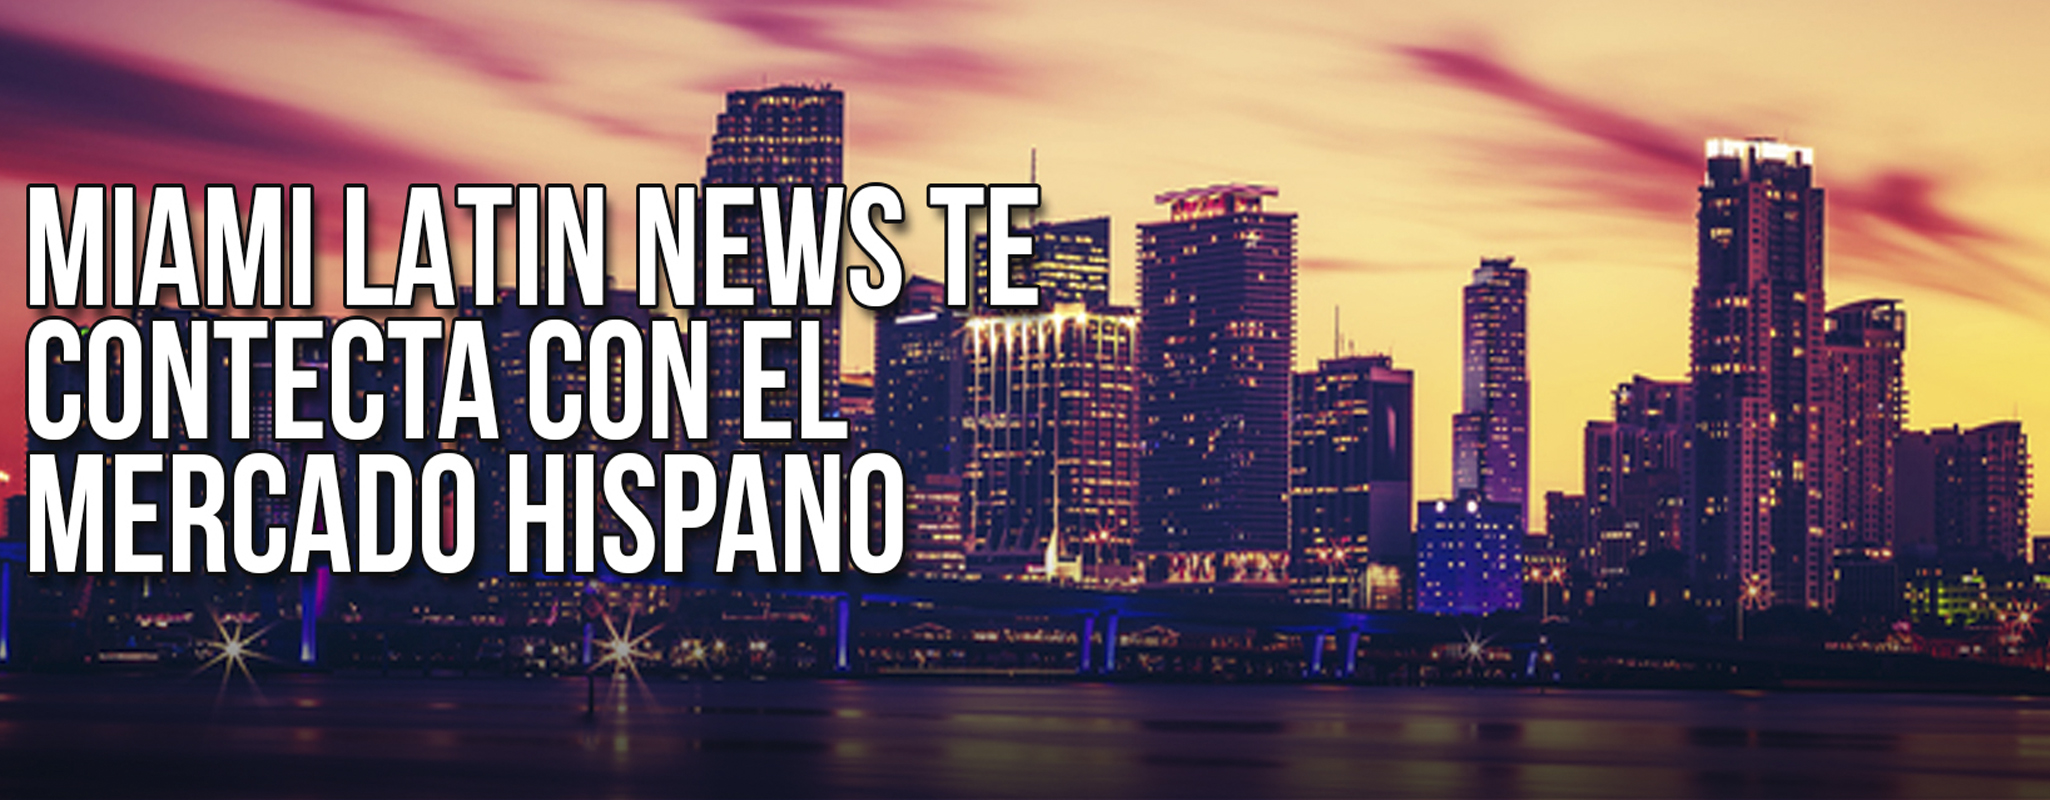 MIAMI LATIN NEWS 5.jpg